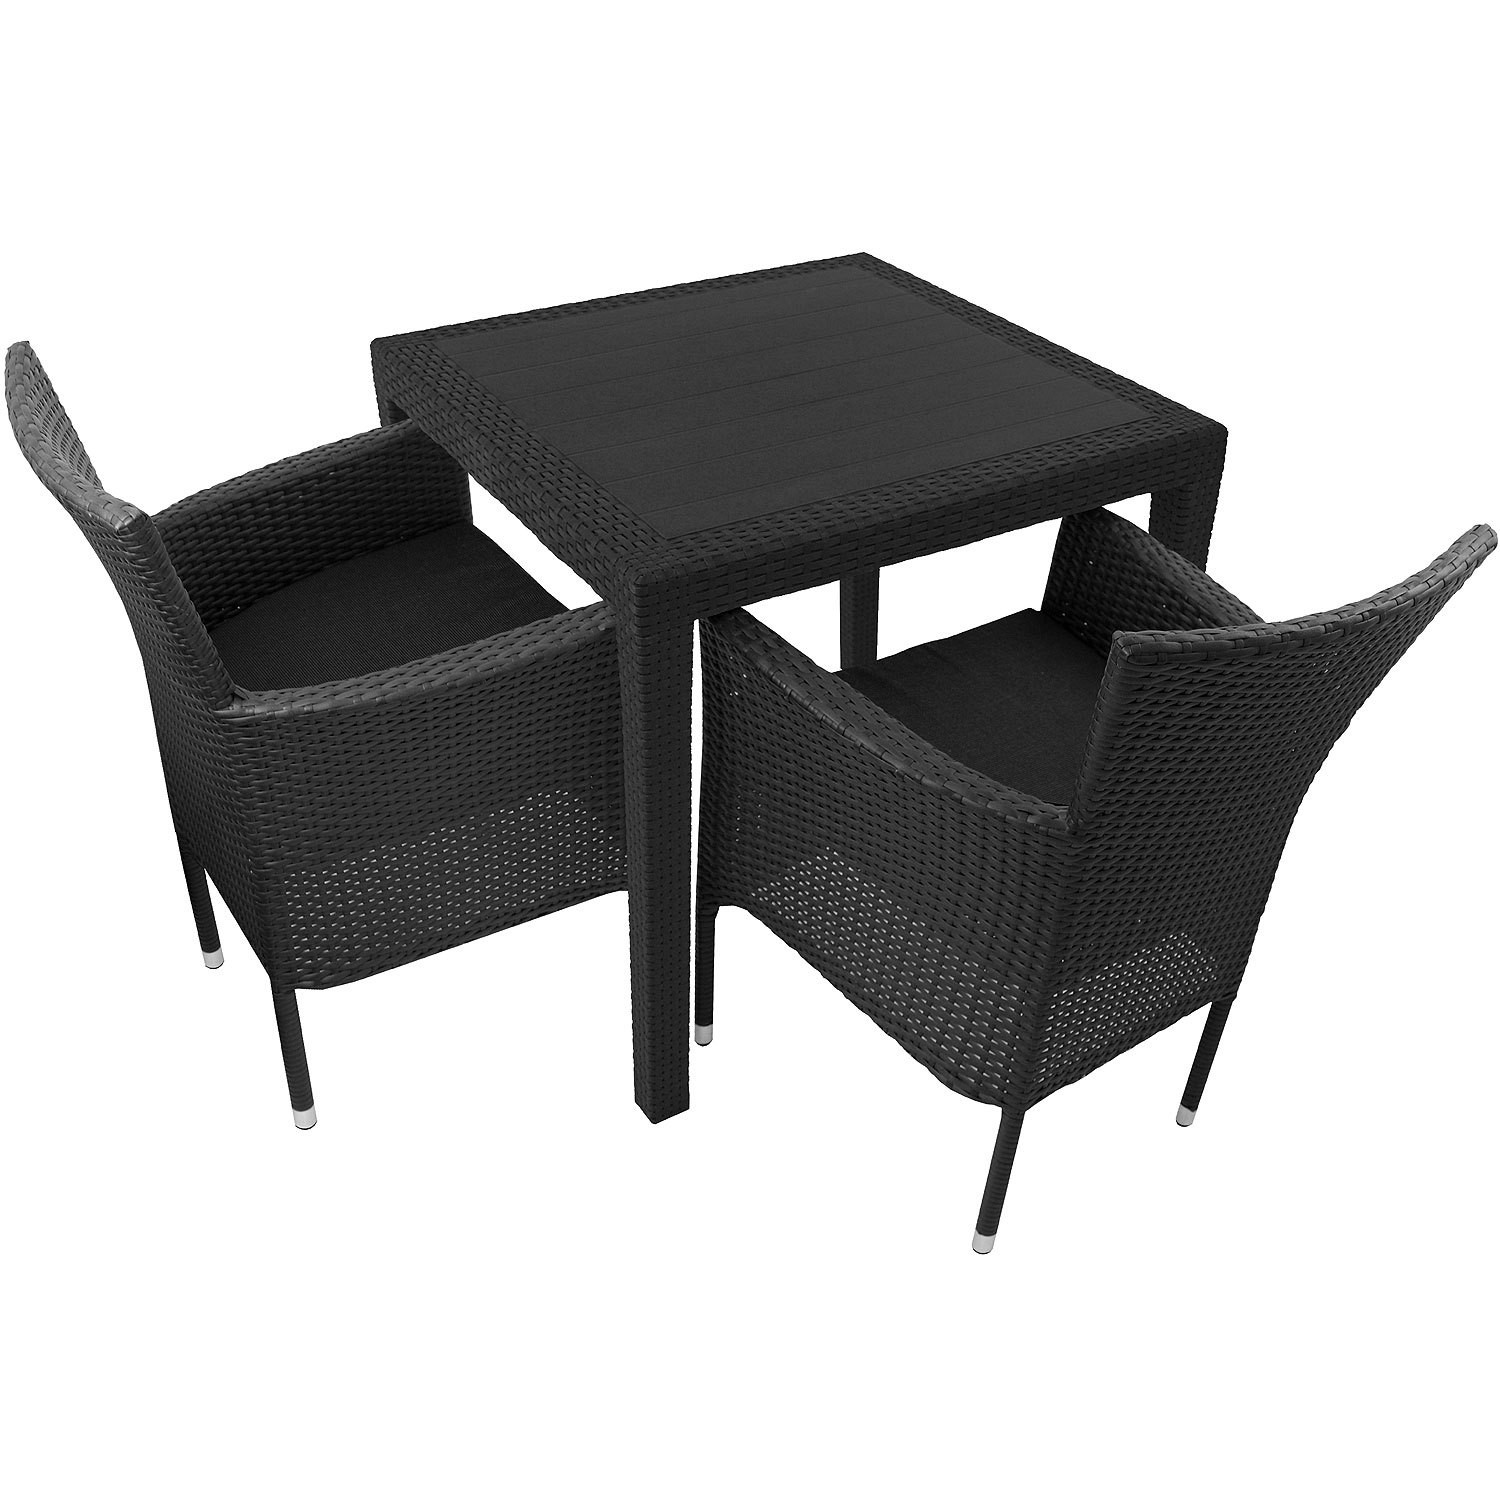 3tlg gartengarnitur kunststoff gartentisch 79x79cm. Black Bedroom Furniture Sets. Home Design Ideas